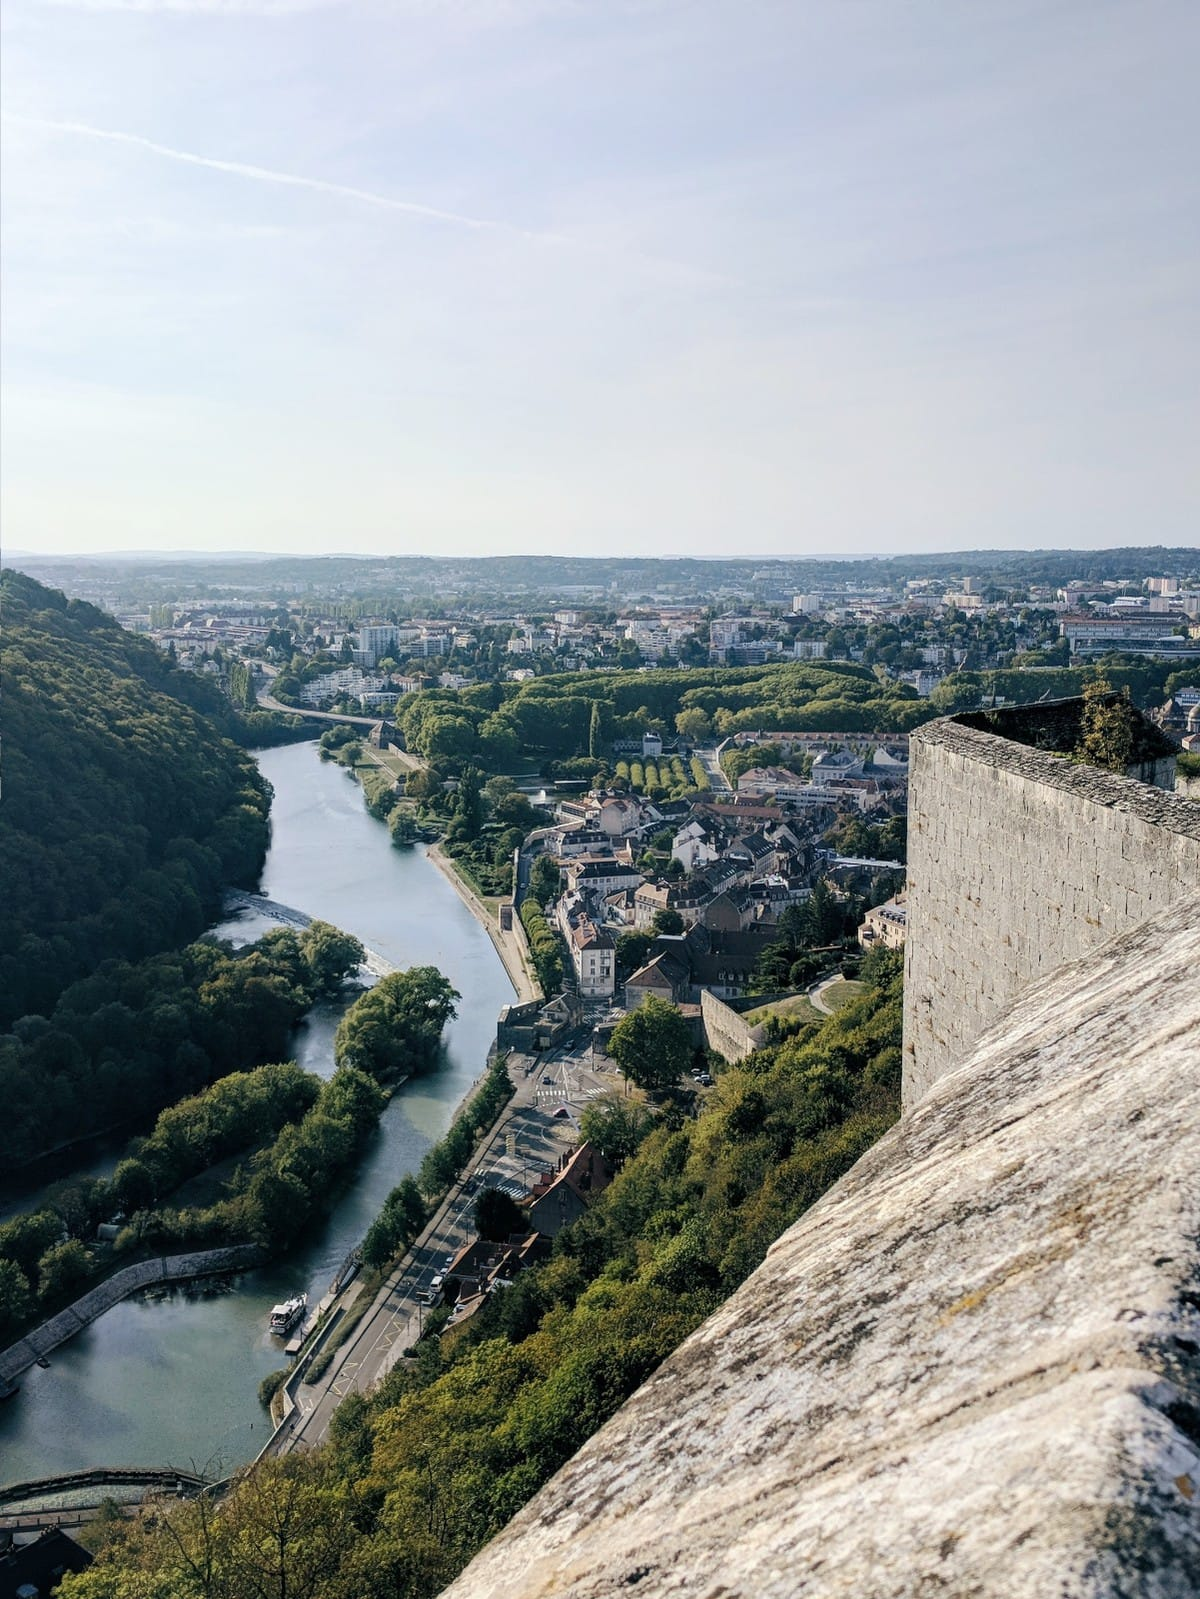 View of Besançon from the Citadel